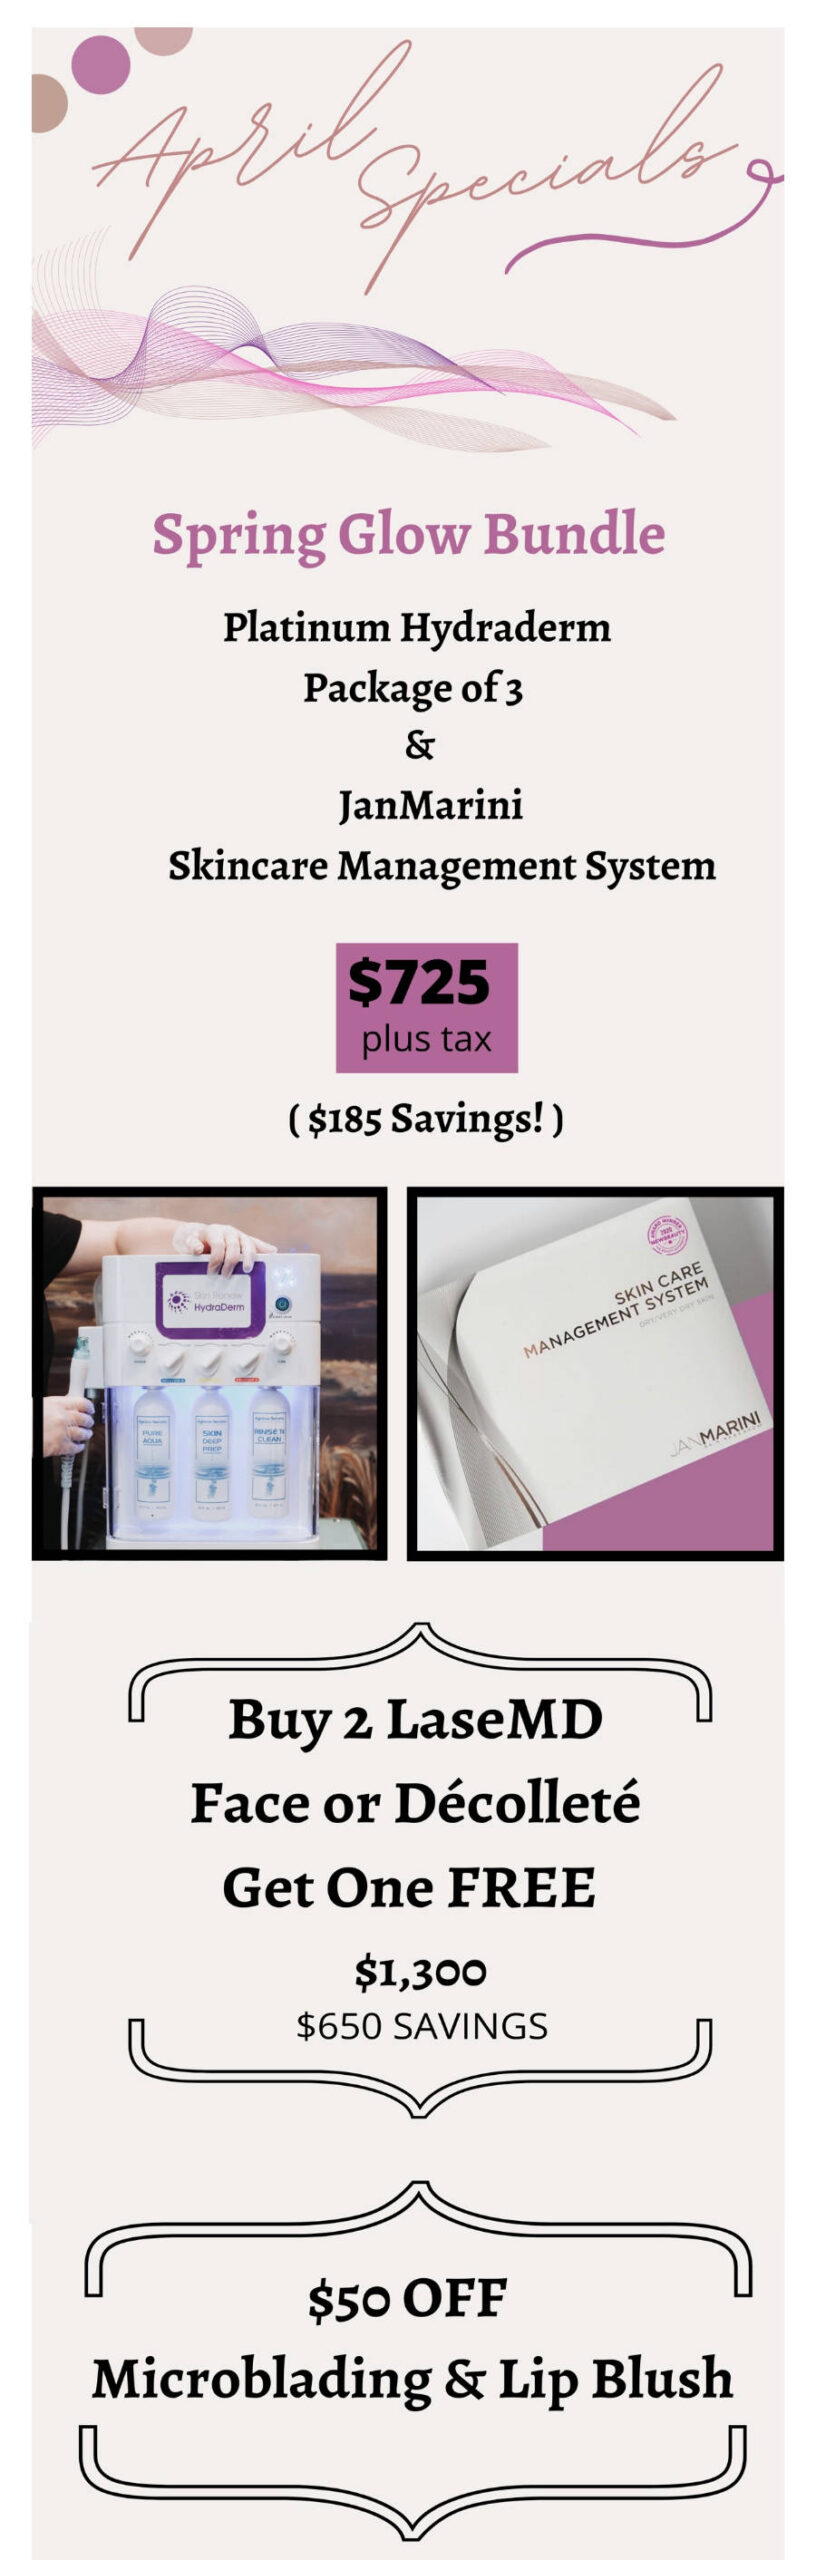 April Special and JanMarini Event Charleston Southern Cosmetic Laser